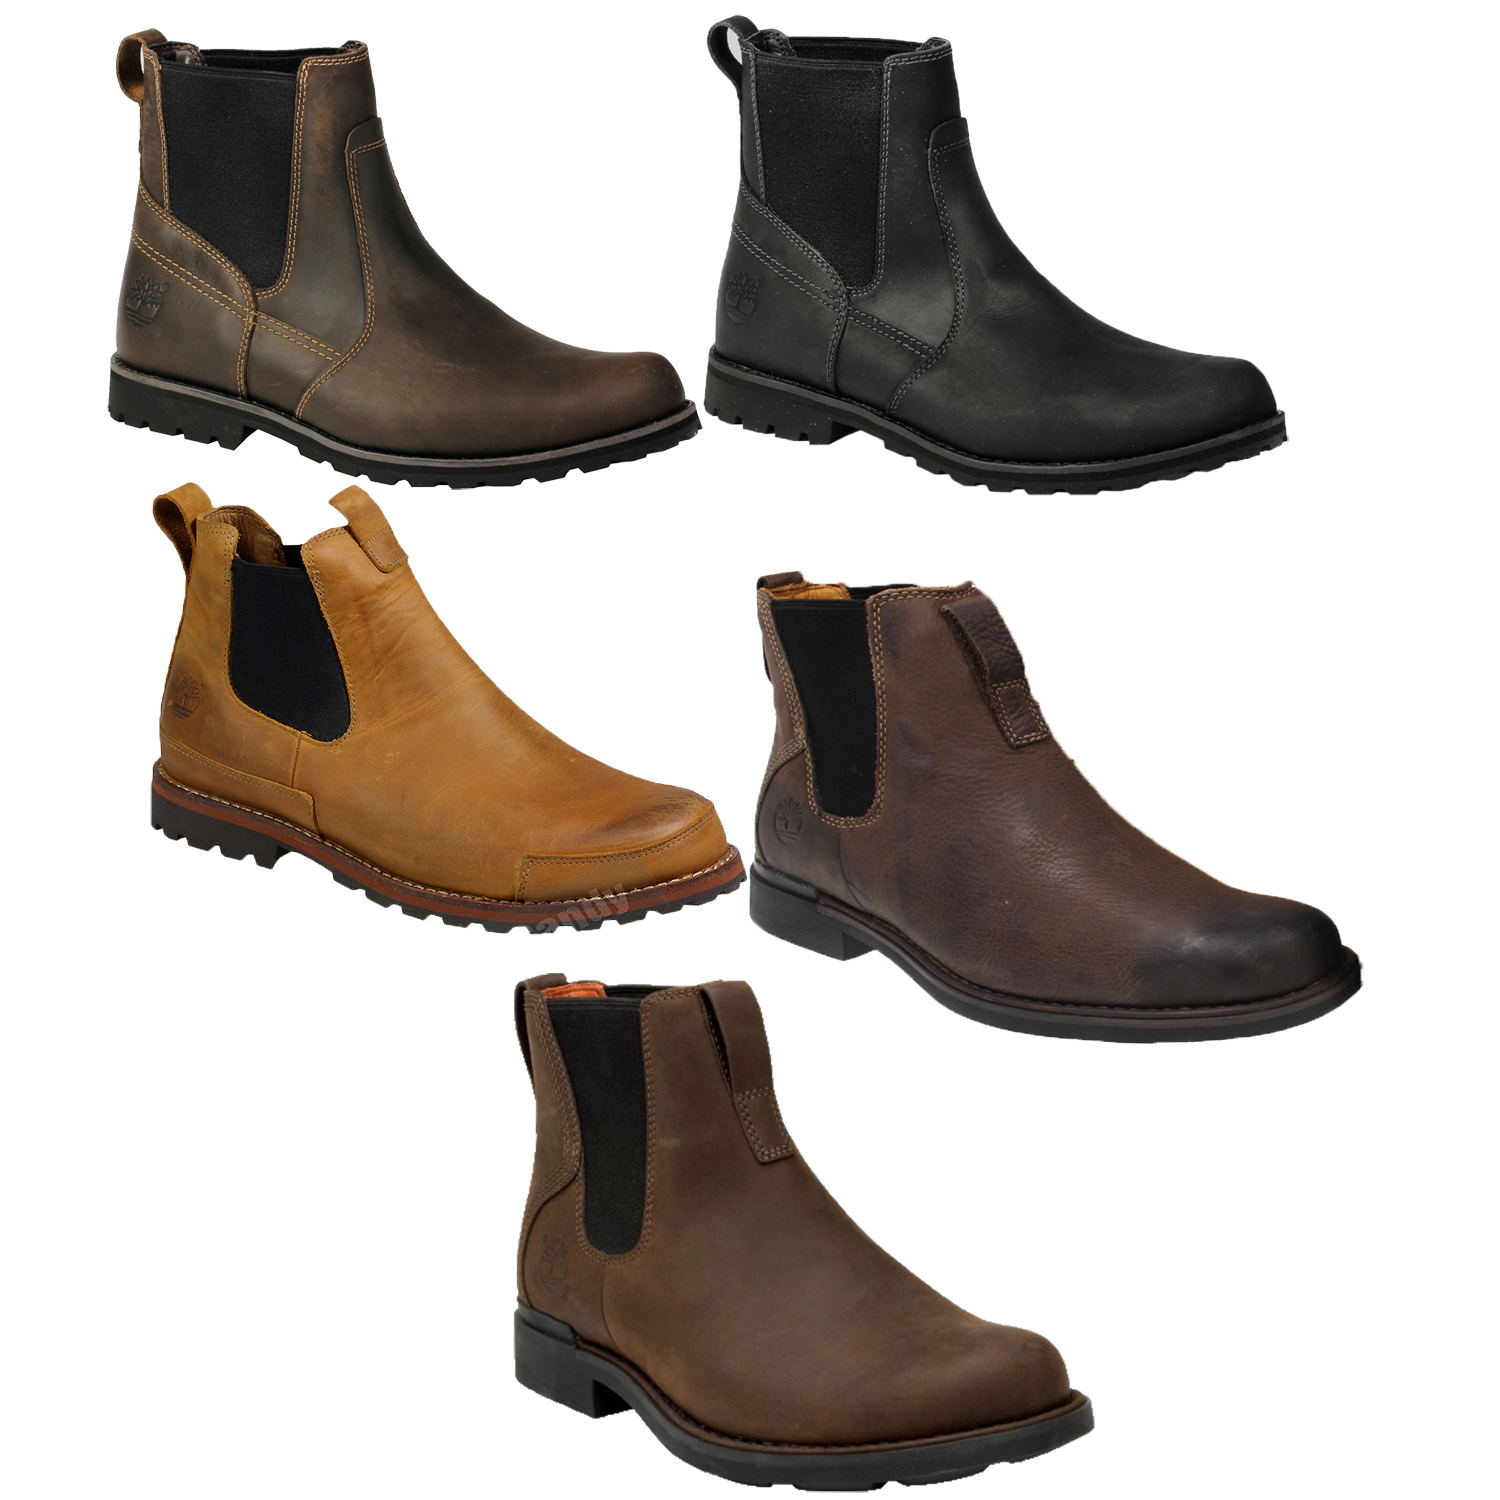 39a6f3596d2 MENS TIMBERLAND 84588 84589 5509R 77593 73170 CHELSEA PULL ON LEATHER ANKLE  BOOT | eBay